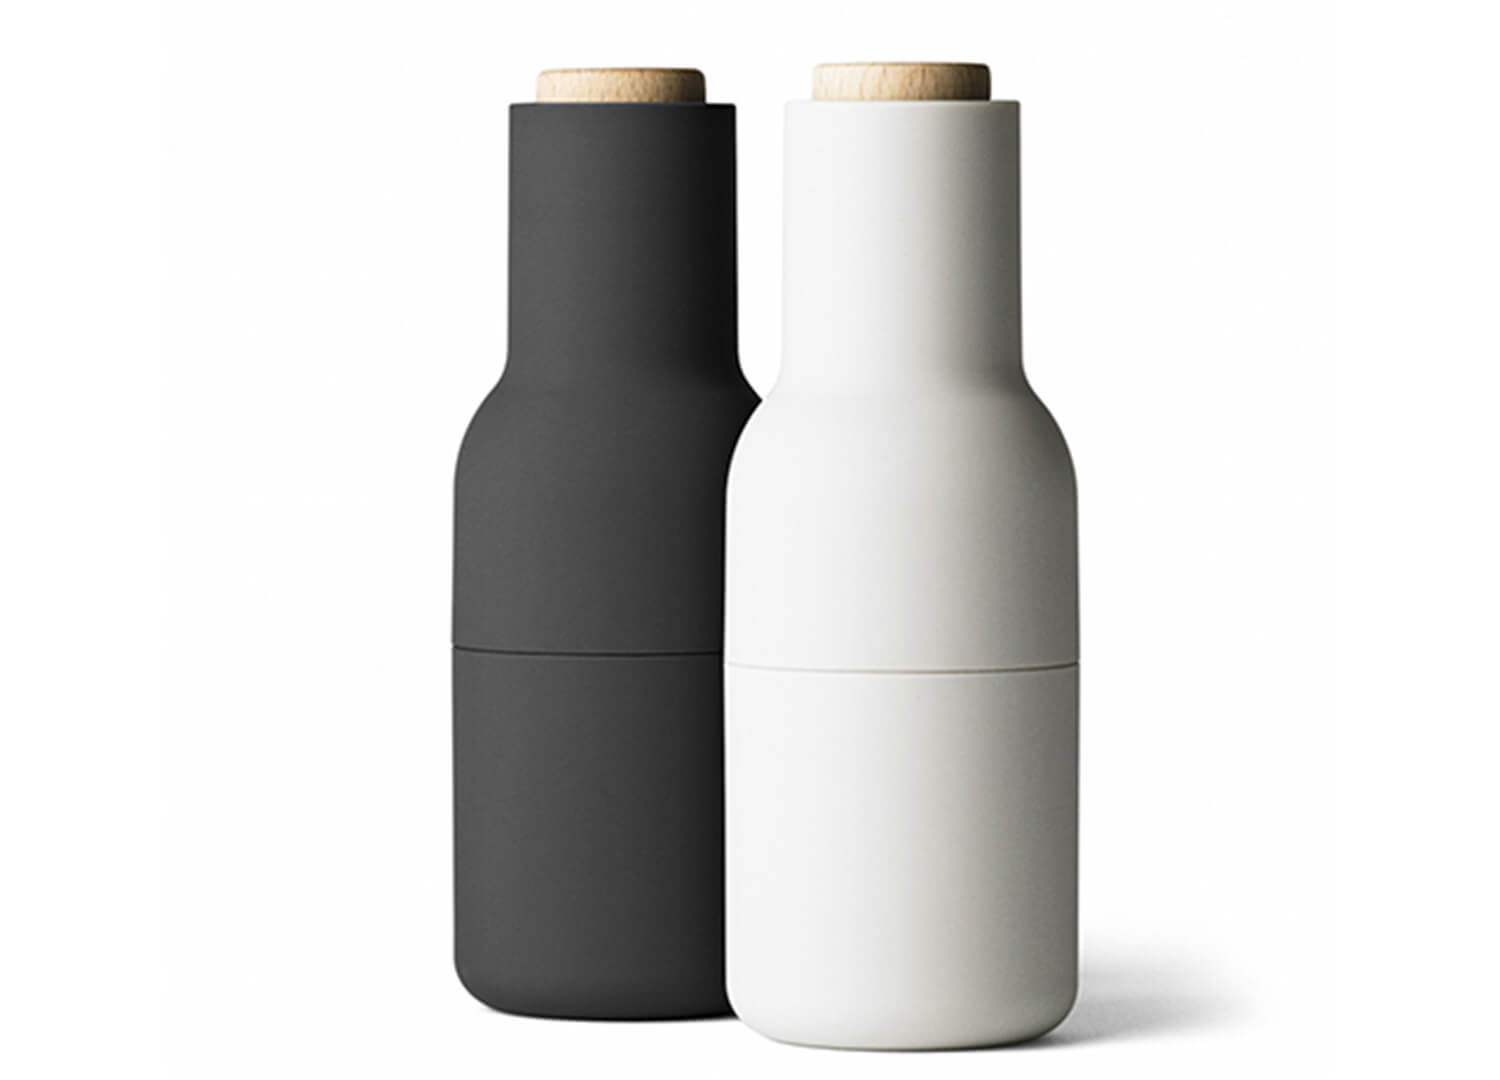 Est Living Bottle Salt Pepper Grinder Menu.01